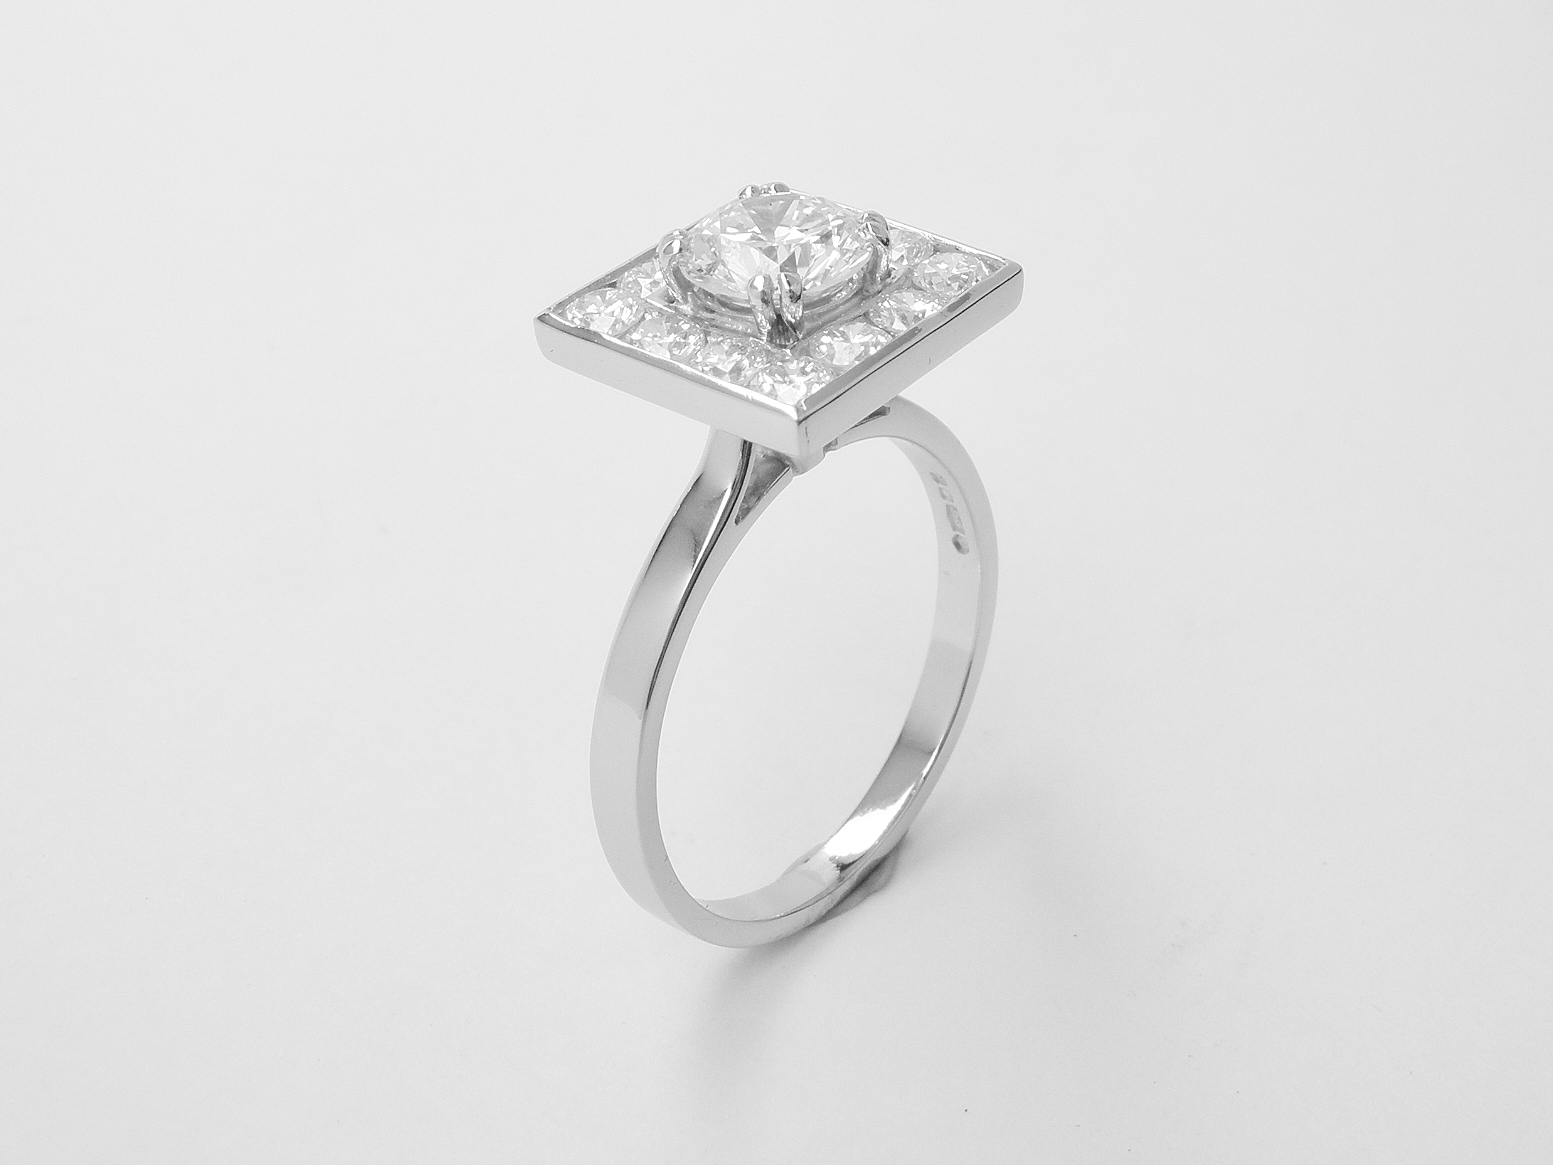 A 13 stone round brilliant cut diamond square channel set ring mounted in platinum.